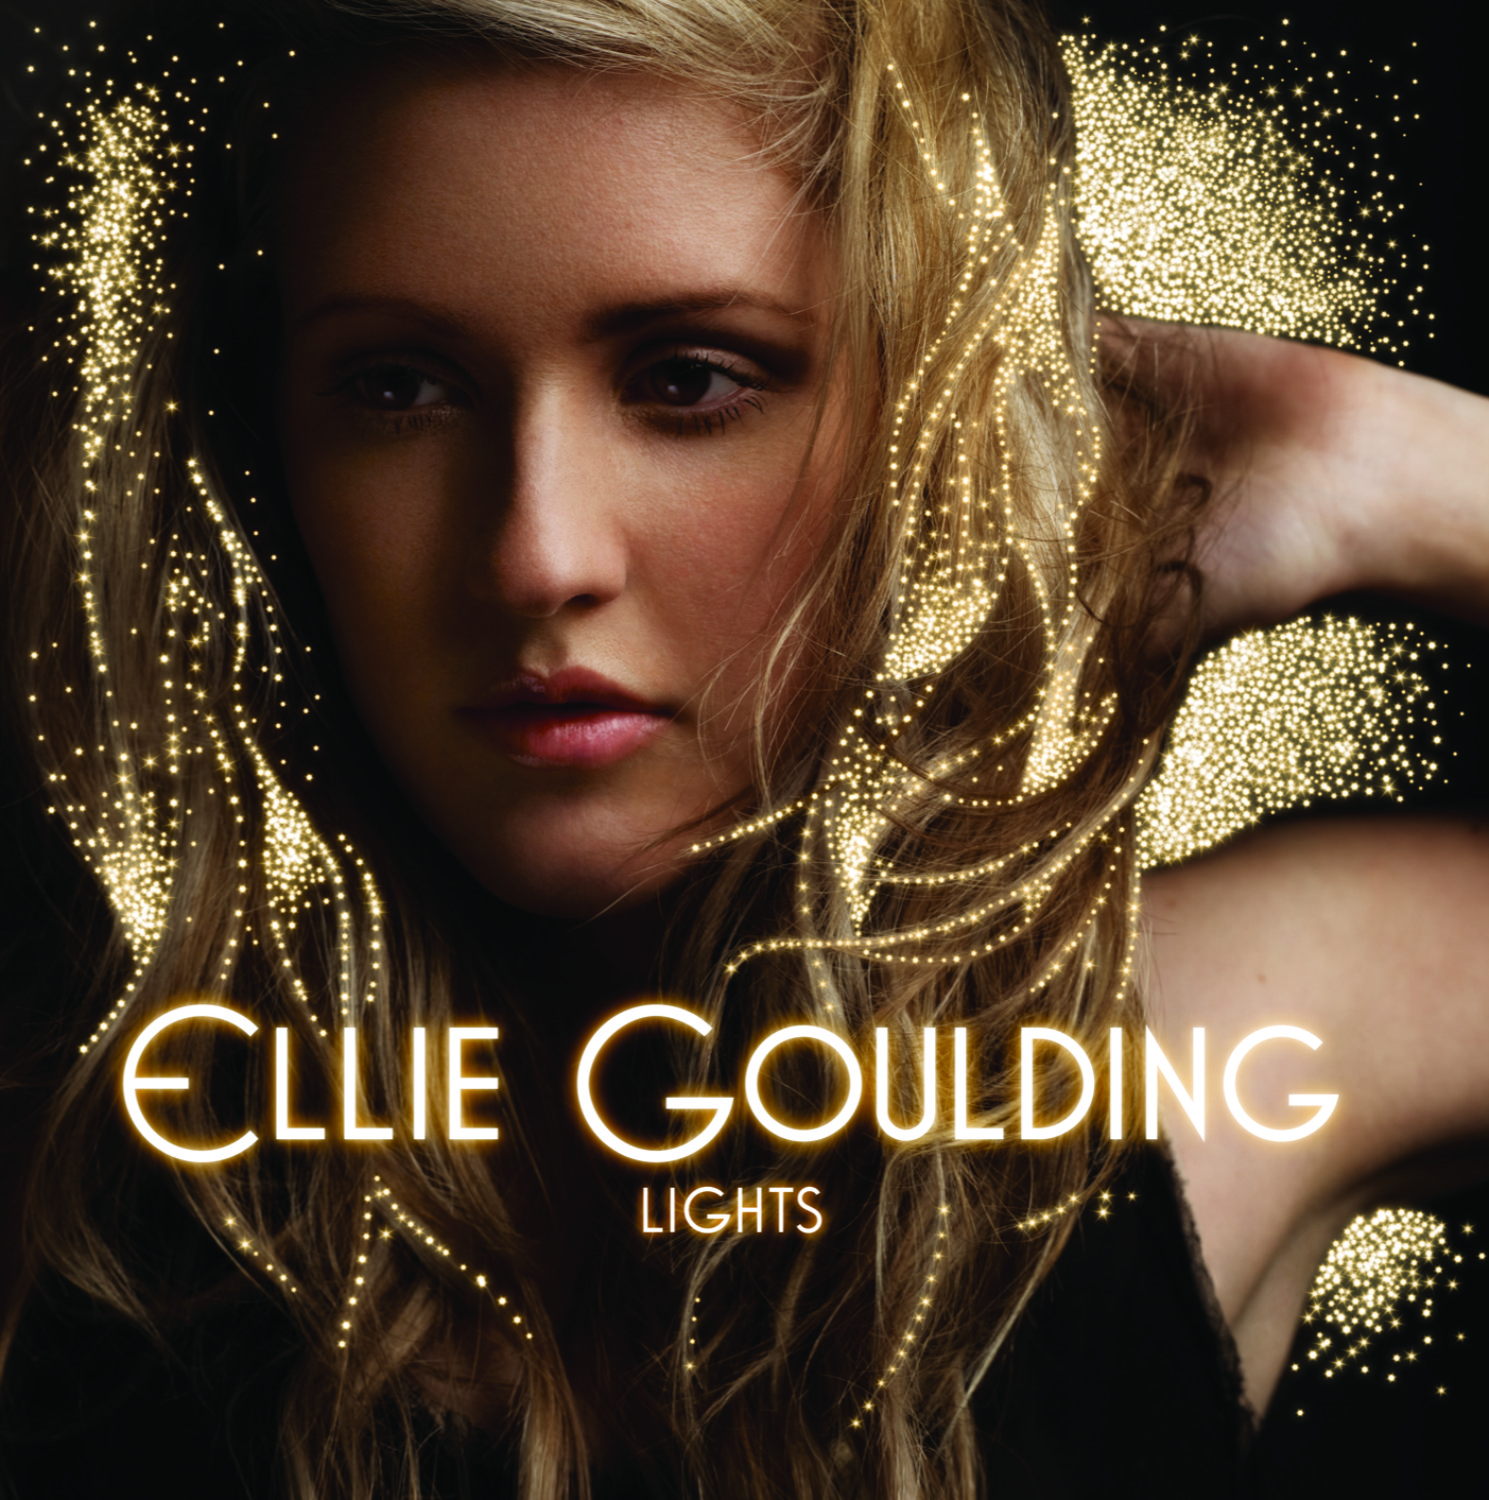 Ellie Goulding – Lights elliegoulding